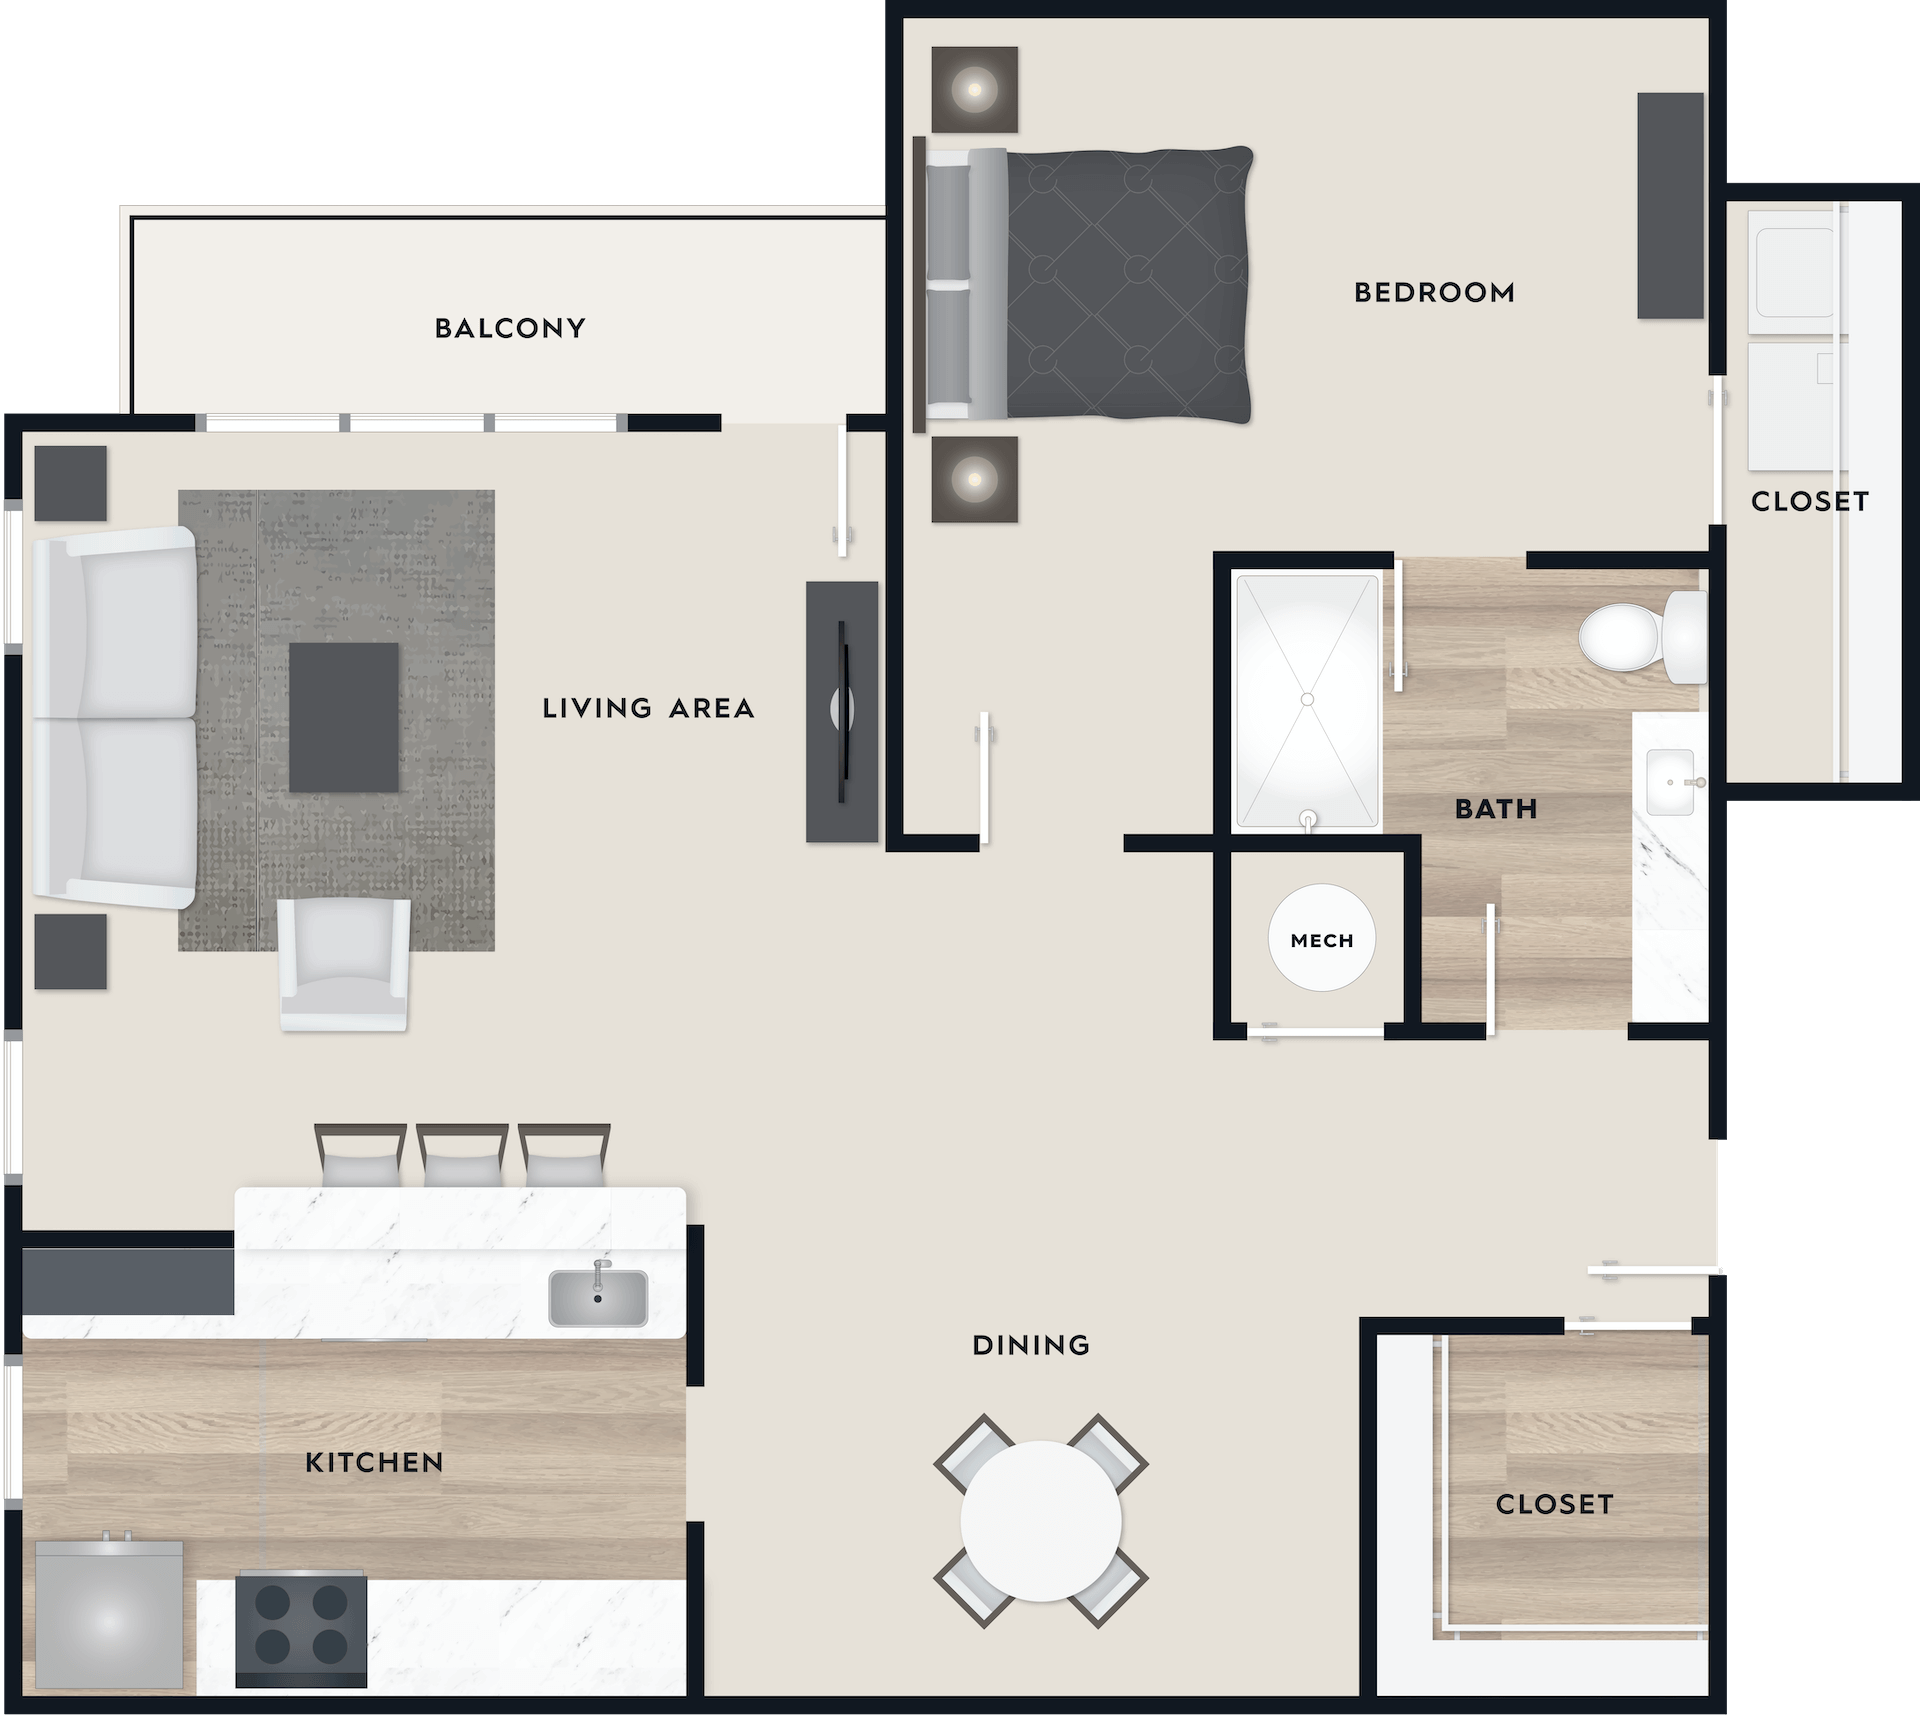 A2 floor plan, 949 square feet, 1 bed, 1 bath, with a balcony.